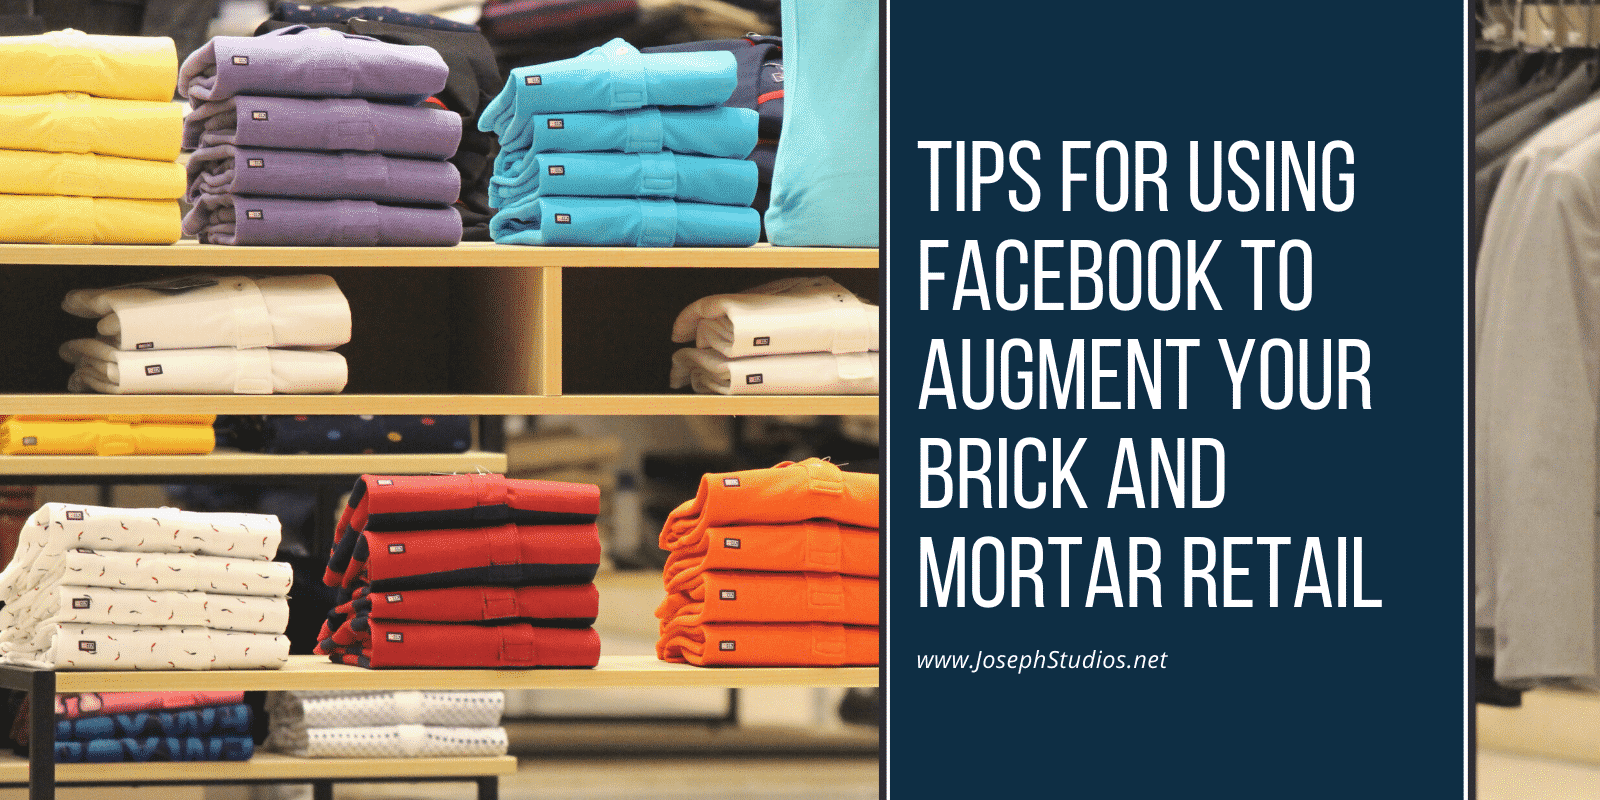 Tips For Using Facebook To Augment Your Brick And Mortar Retail